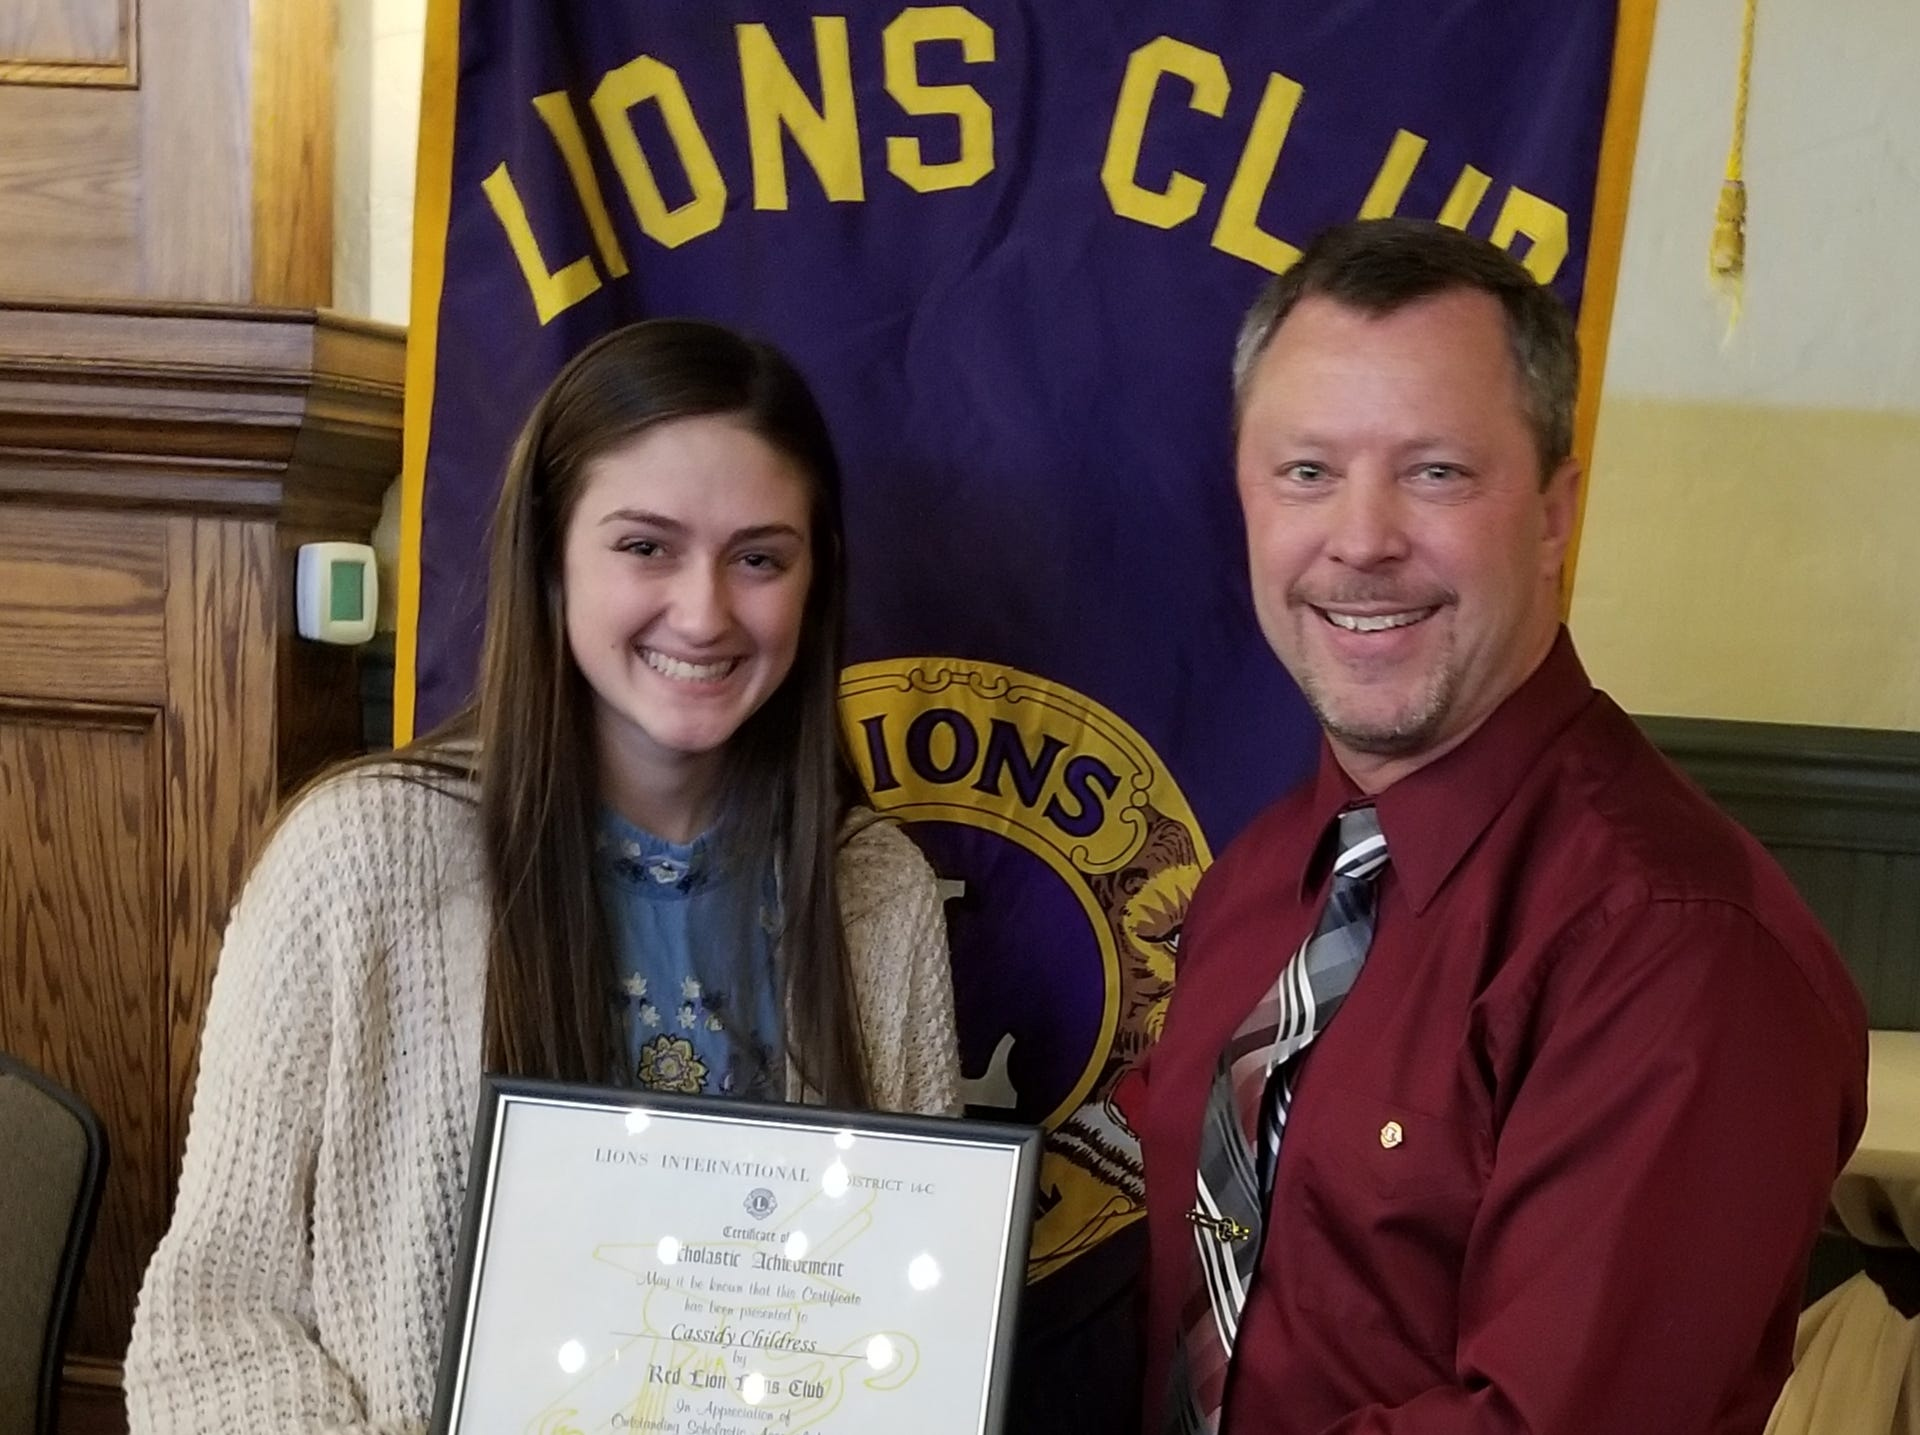 The Red Lion Lions Club is proud to recognize Cassidy Childress who was selected as the Red Lion Area Senior High School Student of the Month for February 2019. Pictured are Cassidy Childress and John H. Fishel, Co-Chairman of the Education Committee. submitted